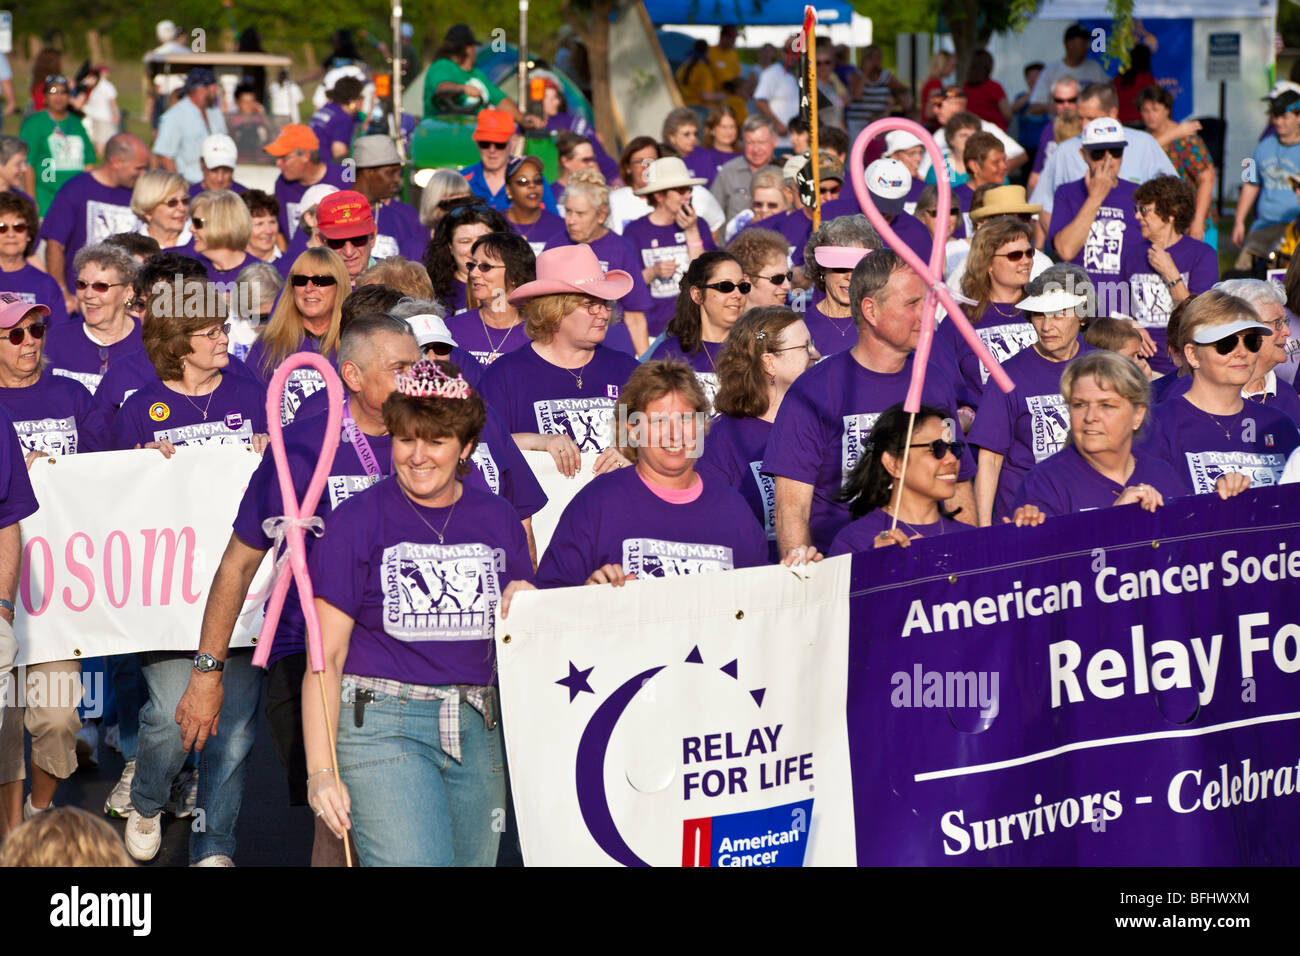 Ocala, FL - Mar 2008 - Cancer survivors carry banner at Relay For Life charity event - Stock Image